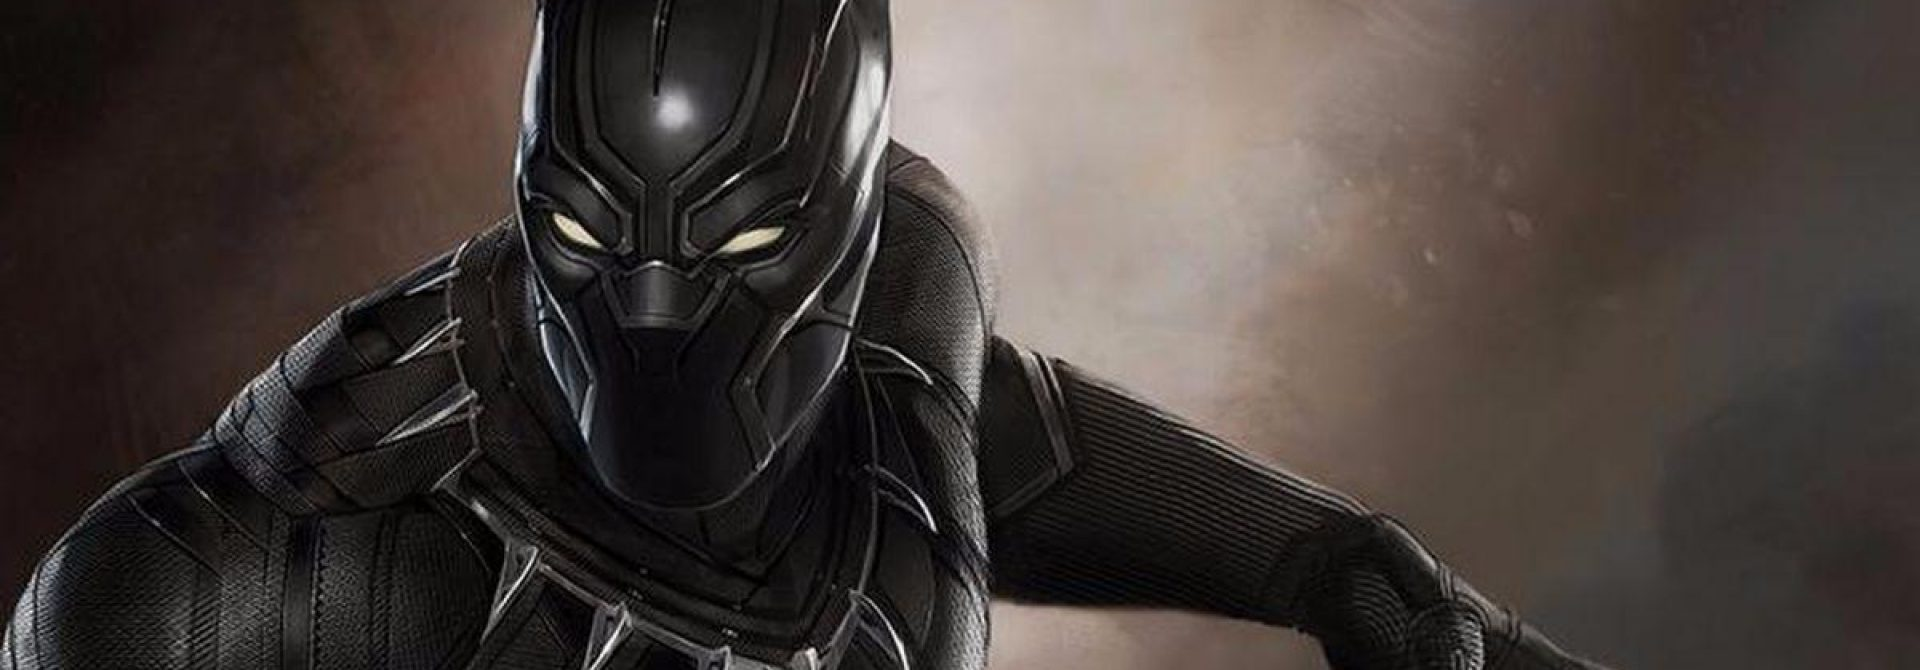 Black Panther: New Synopsis and Production Kicks Off